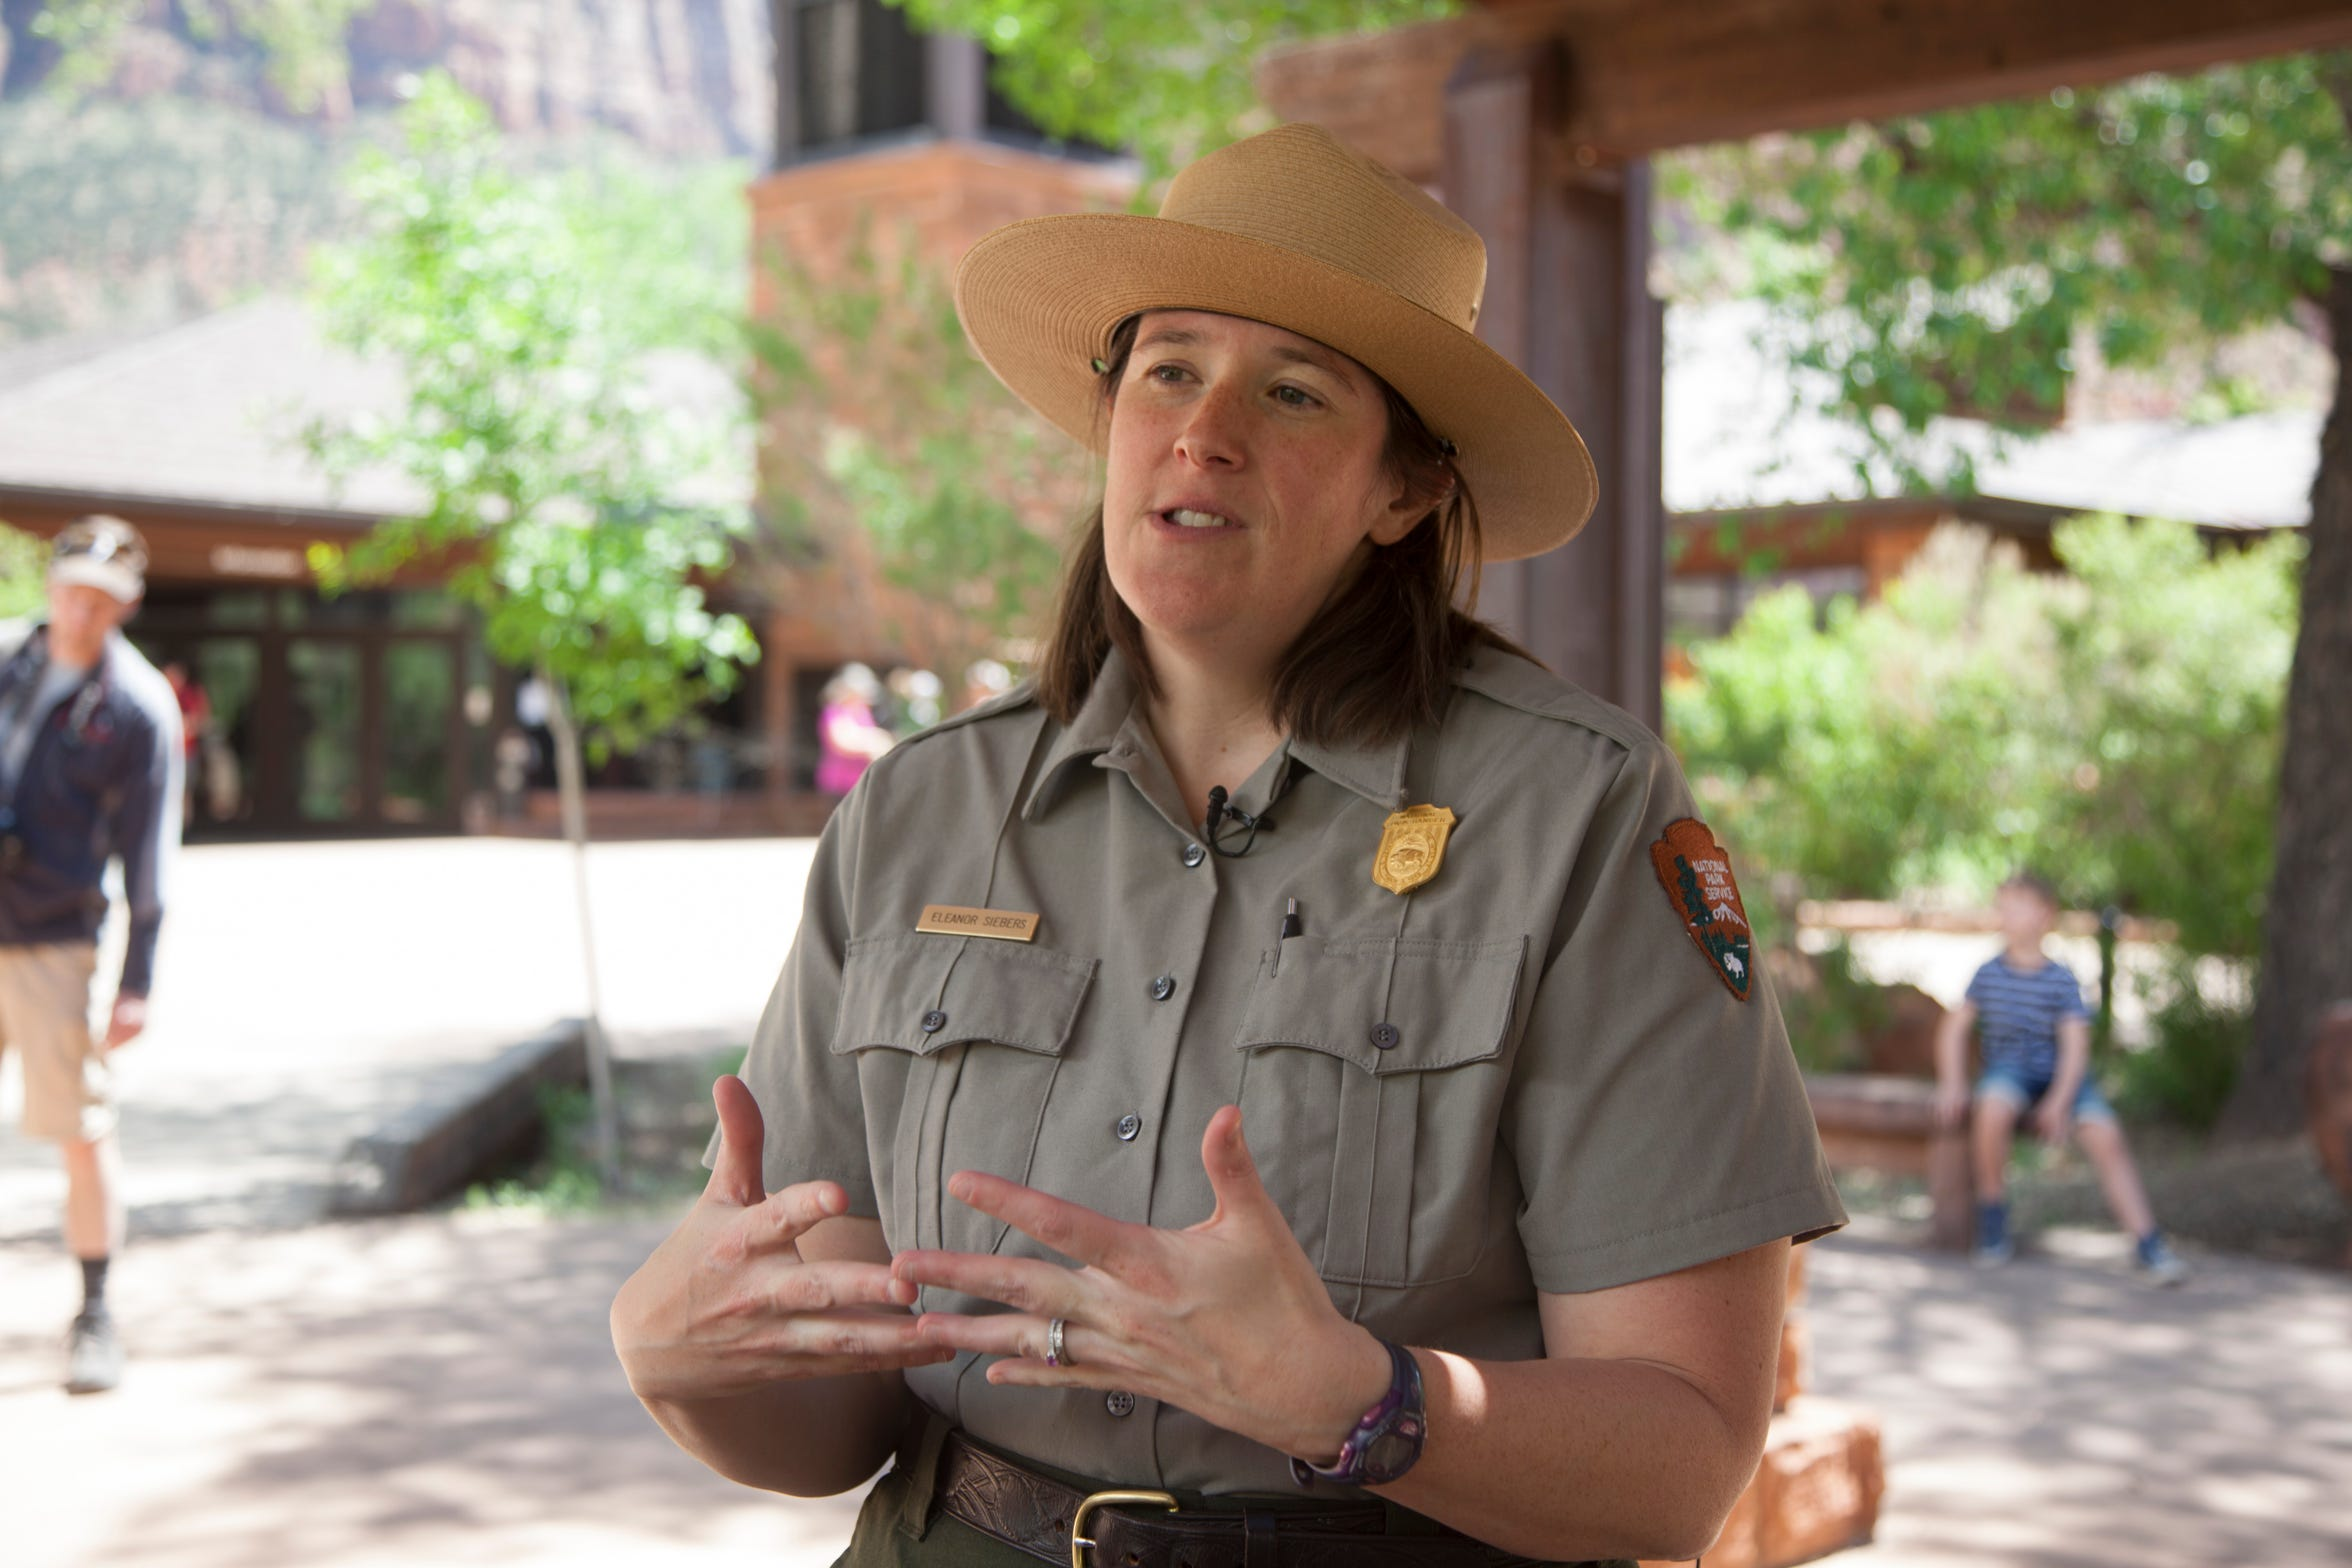 Eleanor Siebers discusses the seasonal influx of visitors to Zion National Park and the role of rangers in enhancing the visitor experience Thursday, April 25, 2019.